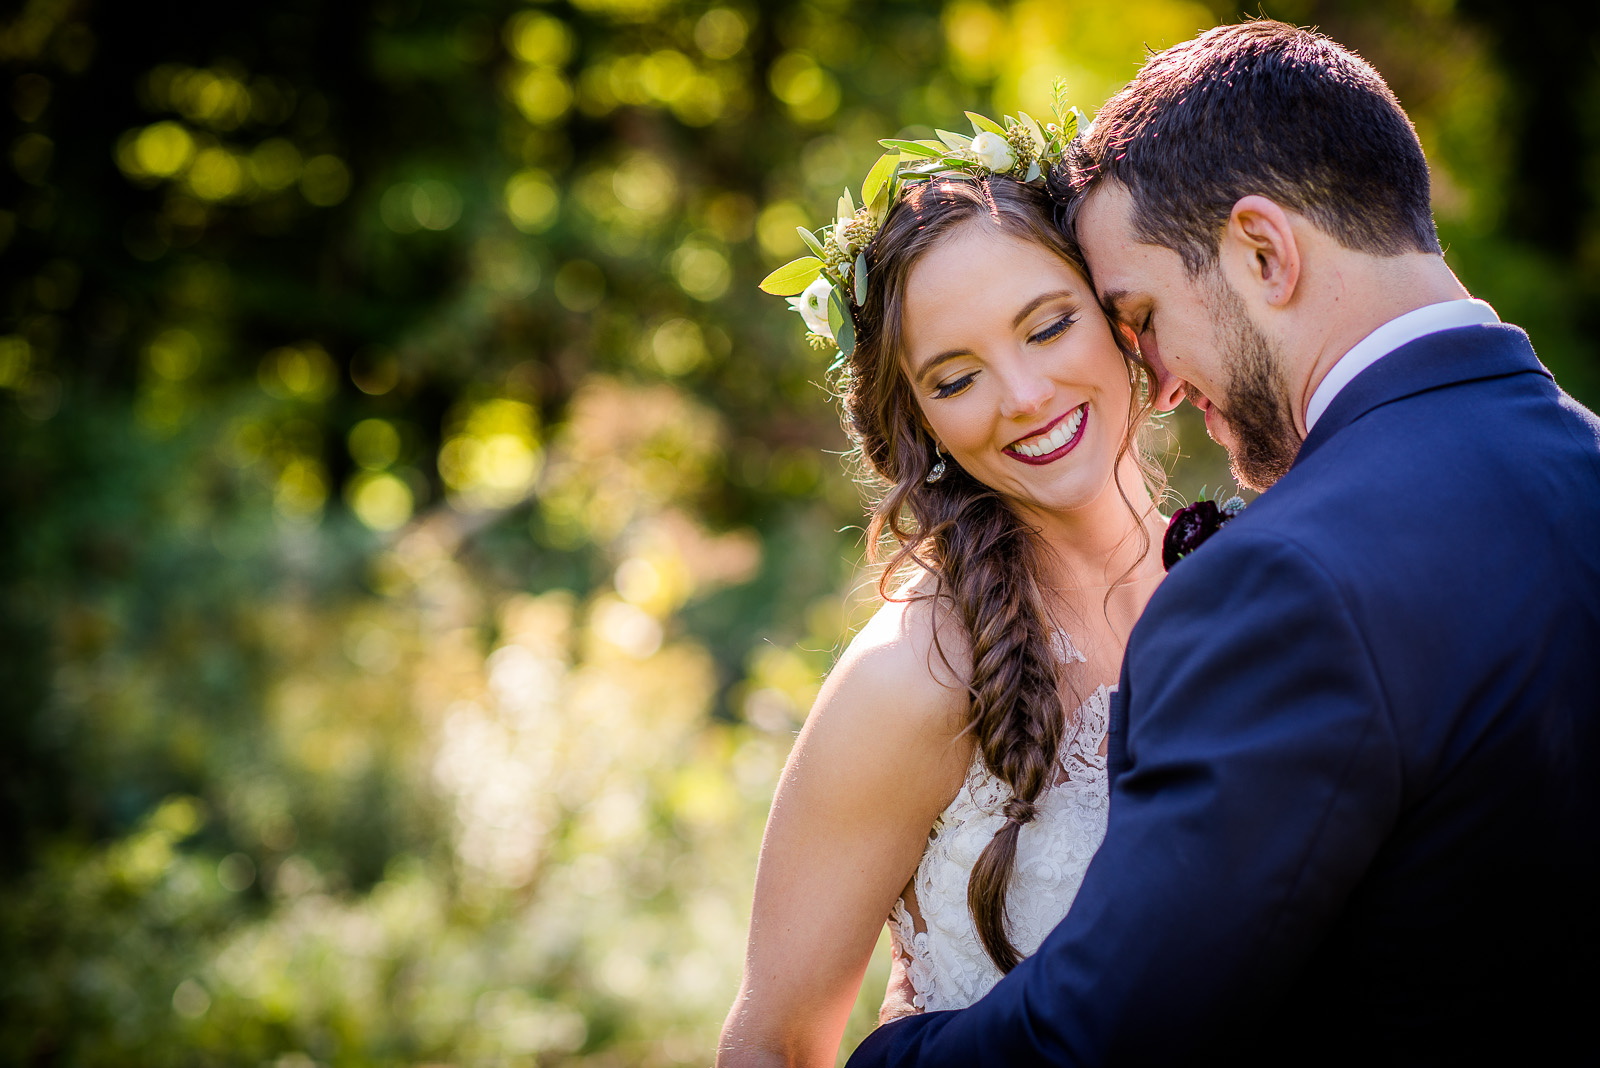 Eric_and_Christy_Photography_Blog_2018_Portraits-28